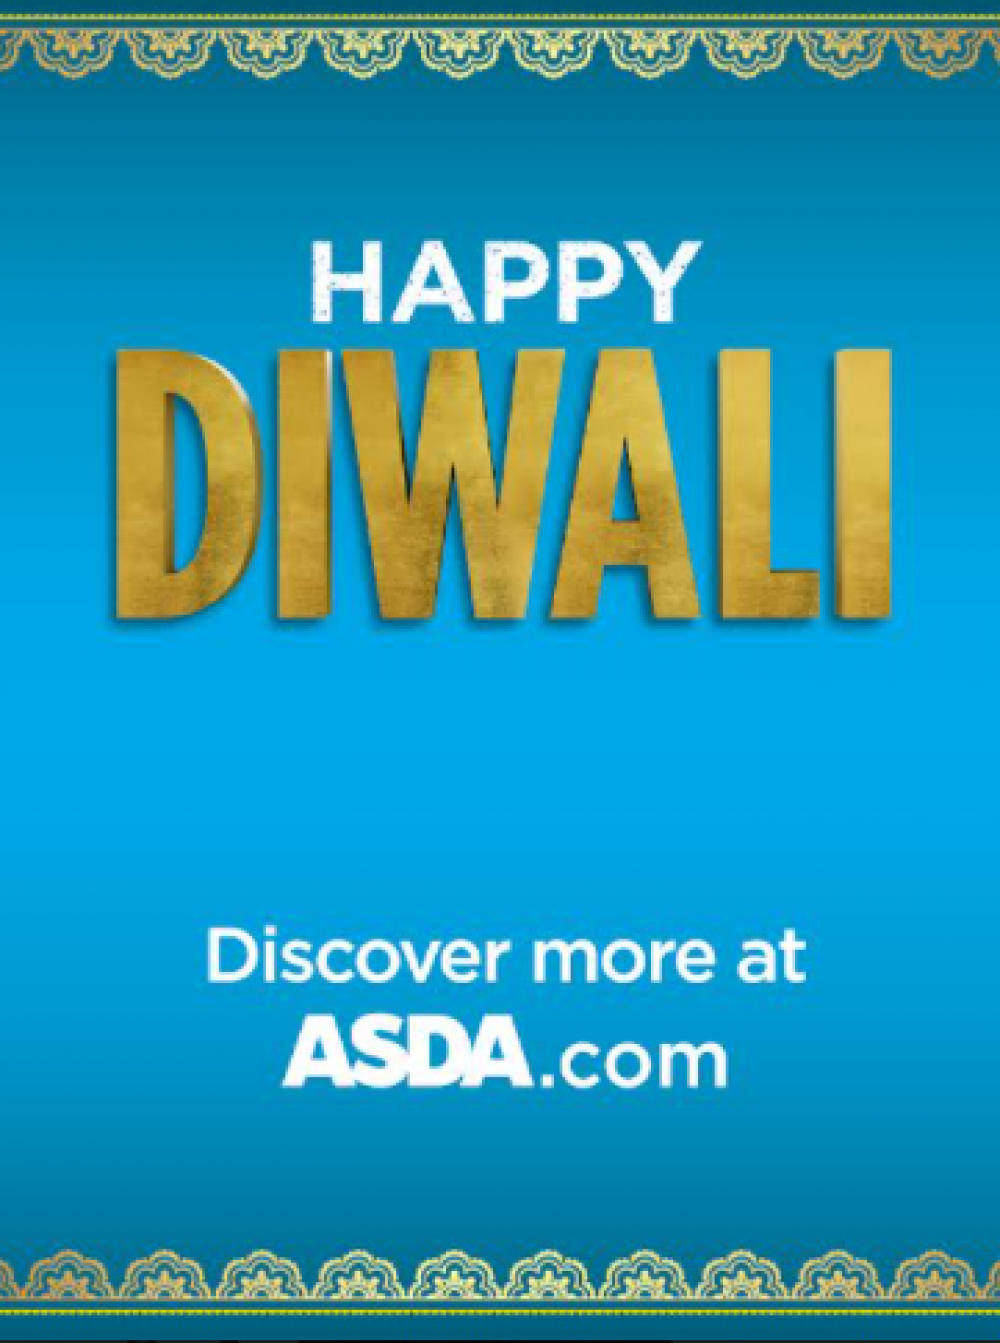 ASDA Has More To Offer You For Diwali Than Ever!